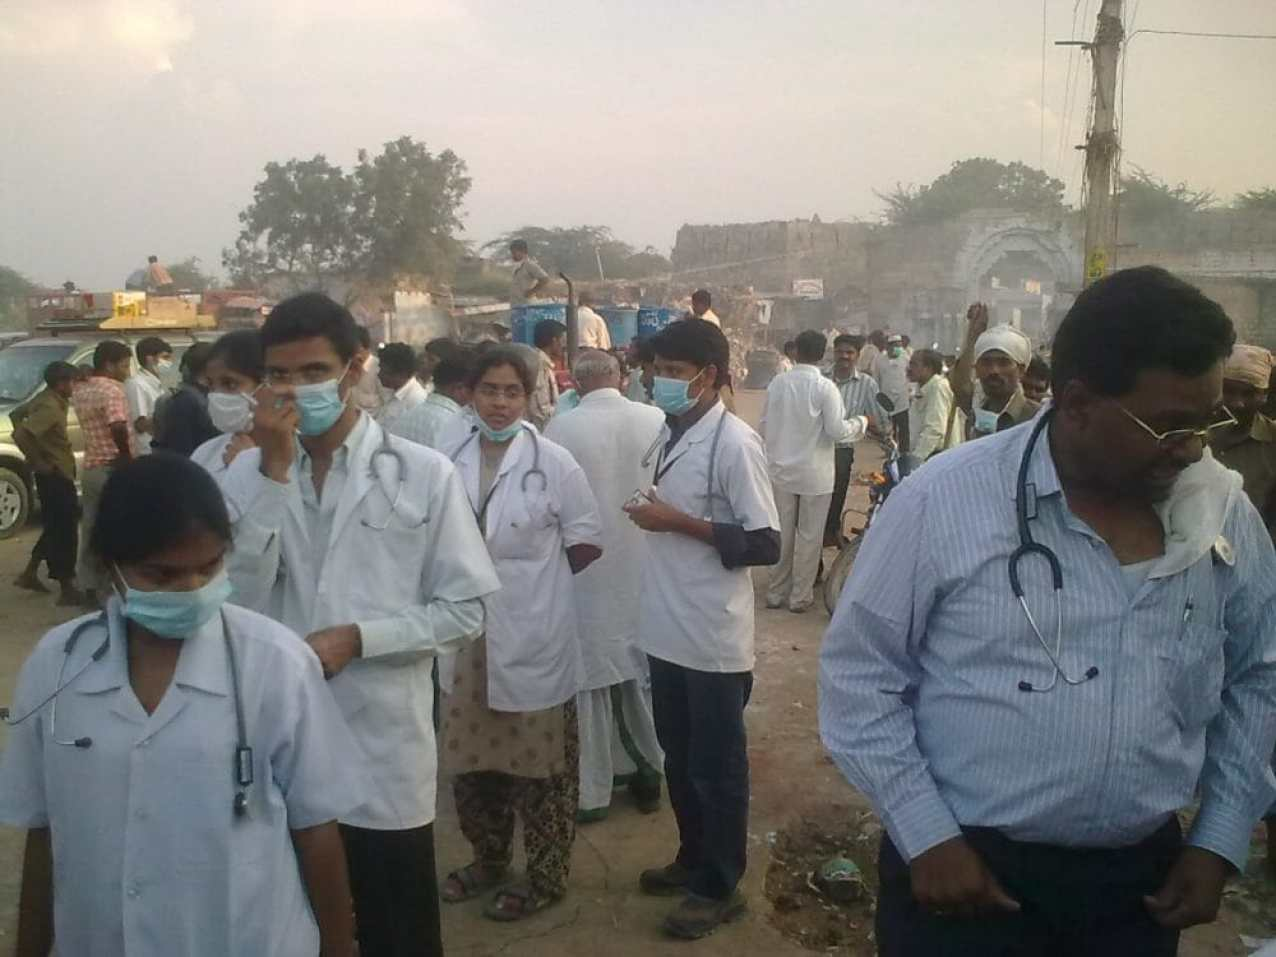 India's shortage of specialist doctors is still staggering